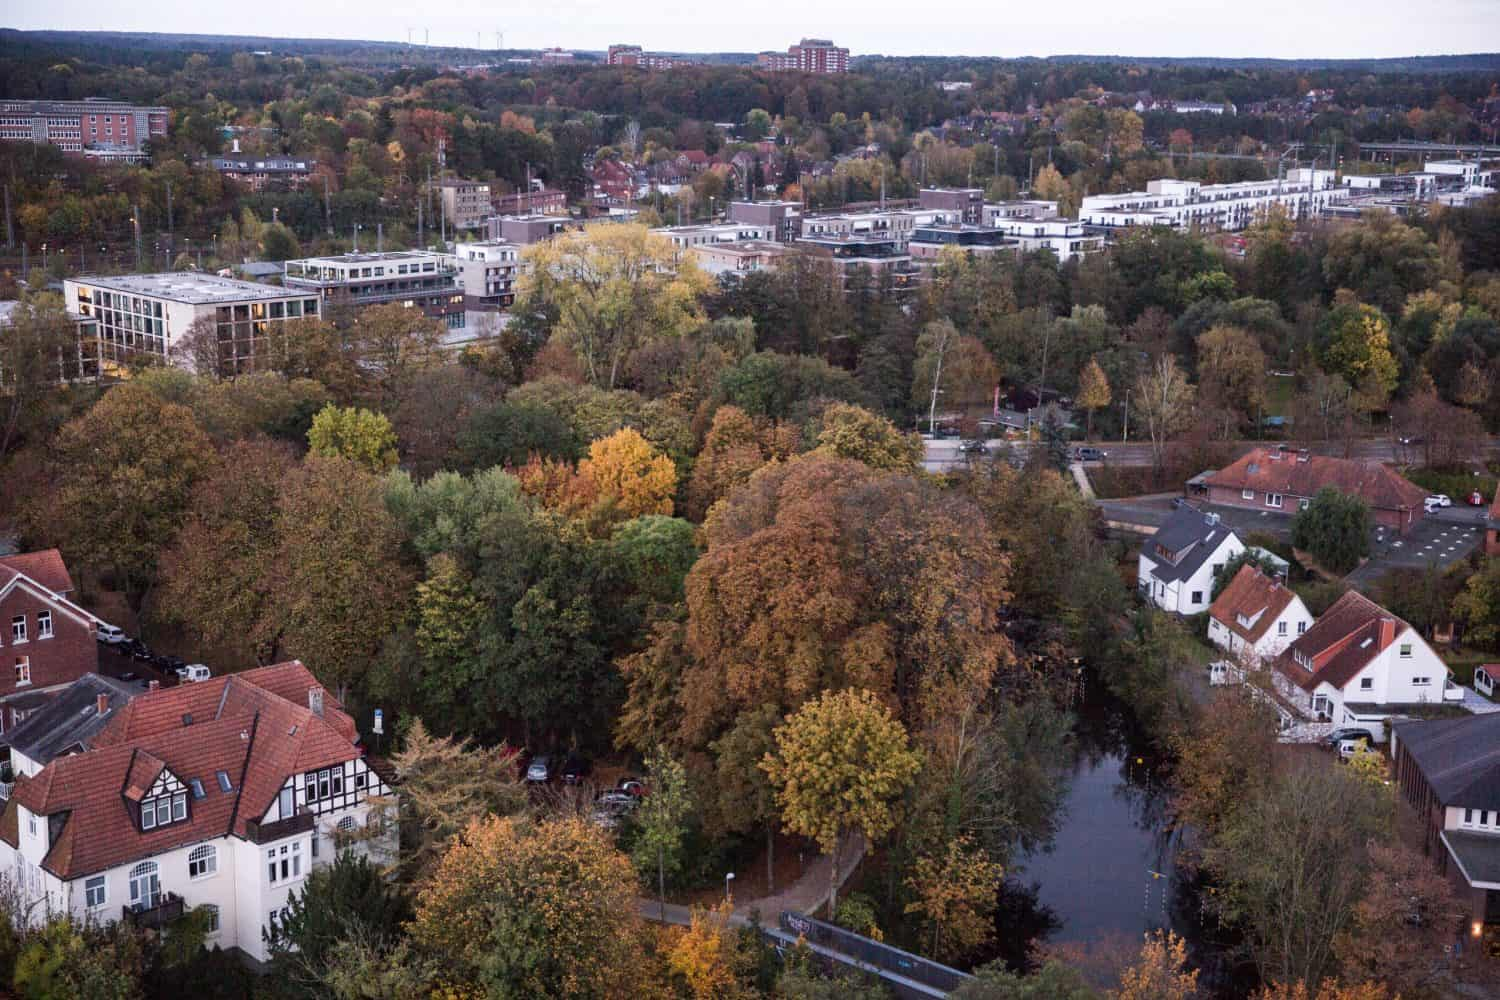 The view from the Lüneburg Water Tower. Lüneburg makes a great day trip from Hamburg!